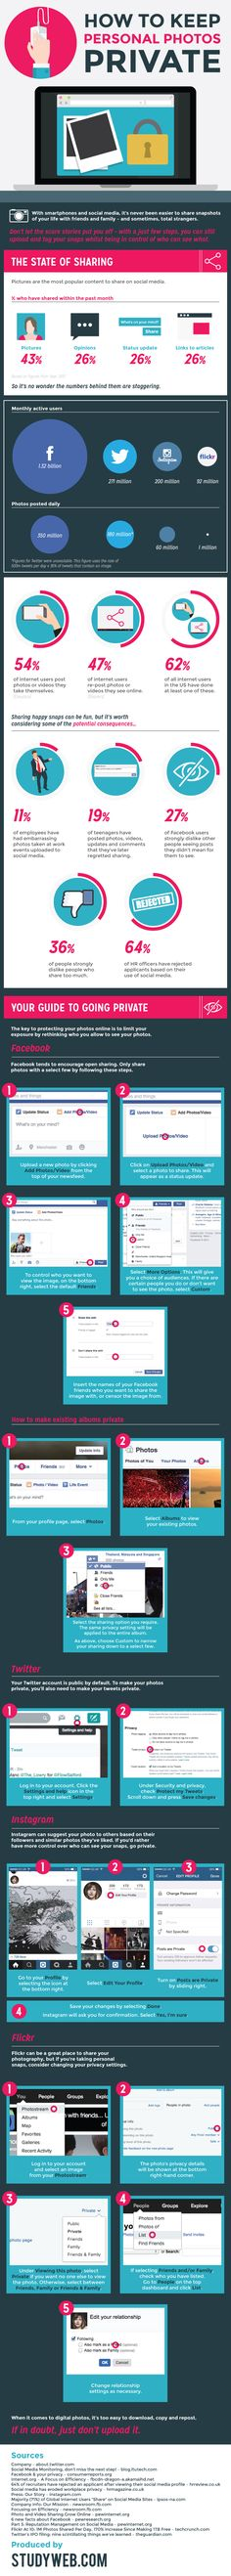 How to Change Photo Privacy Settings on Facebook, Twitter and Other Popular #SocialMedia Sites - #Infographic